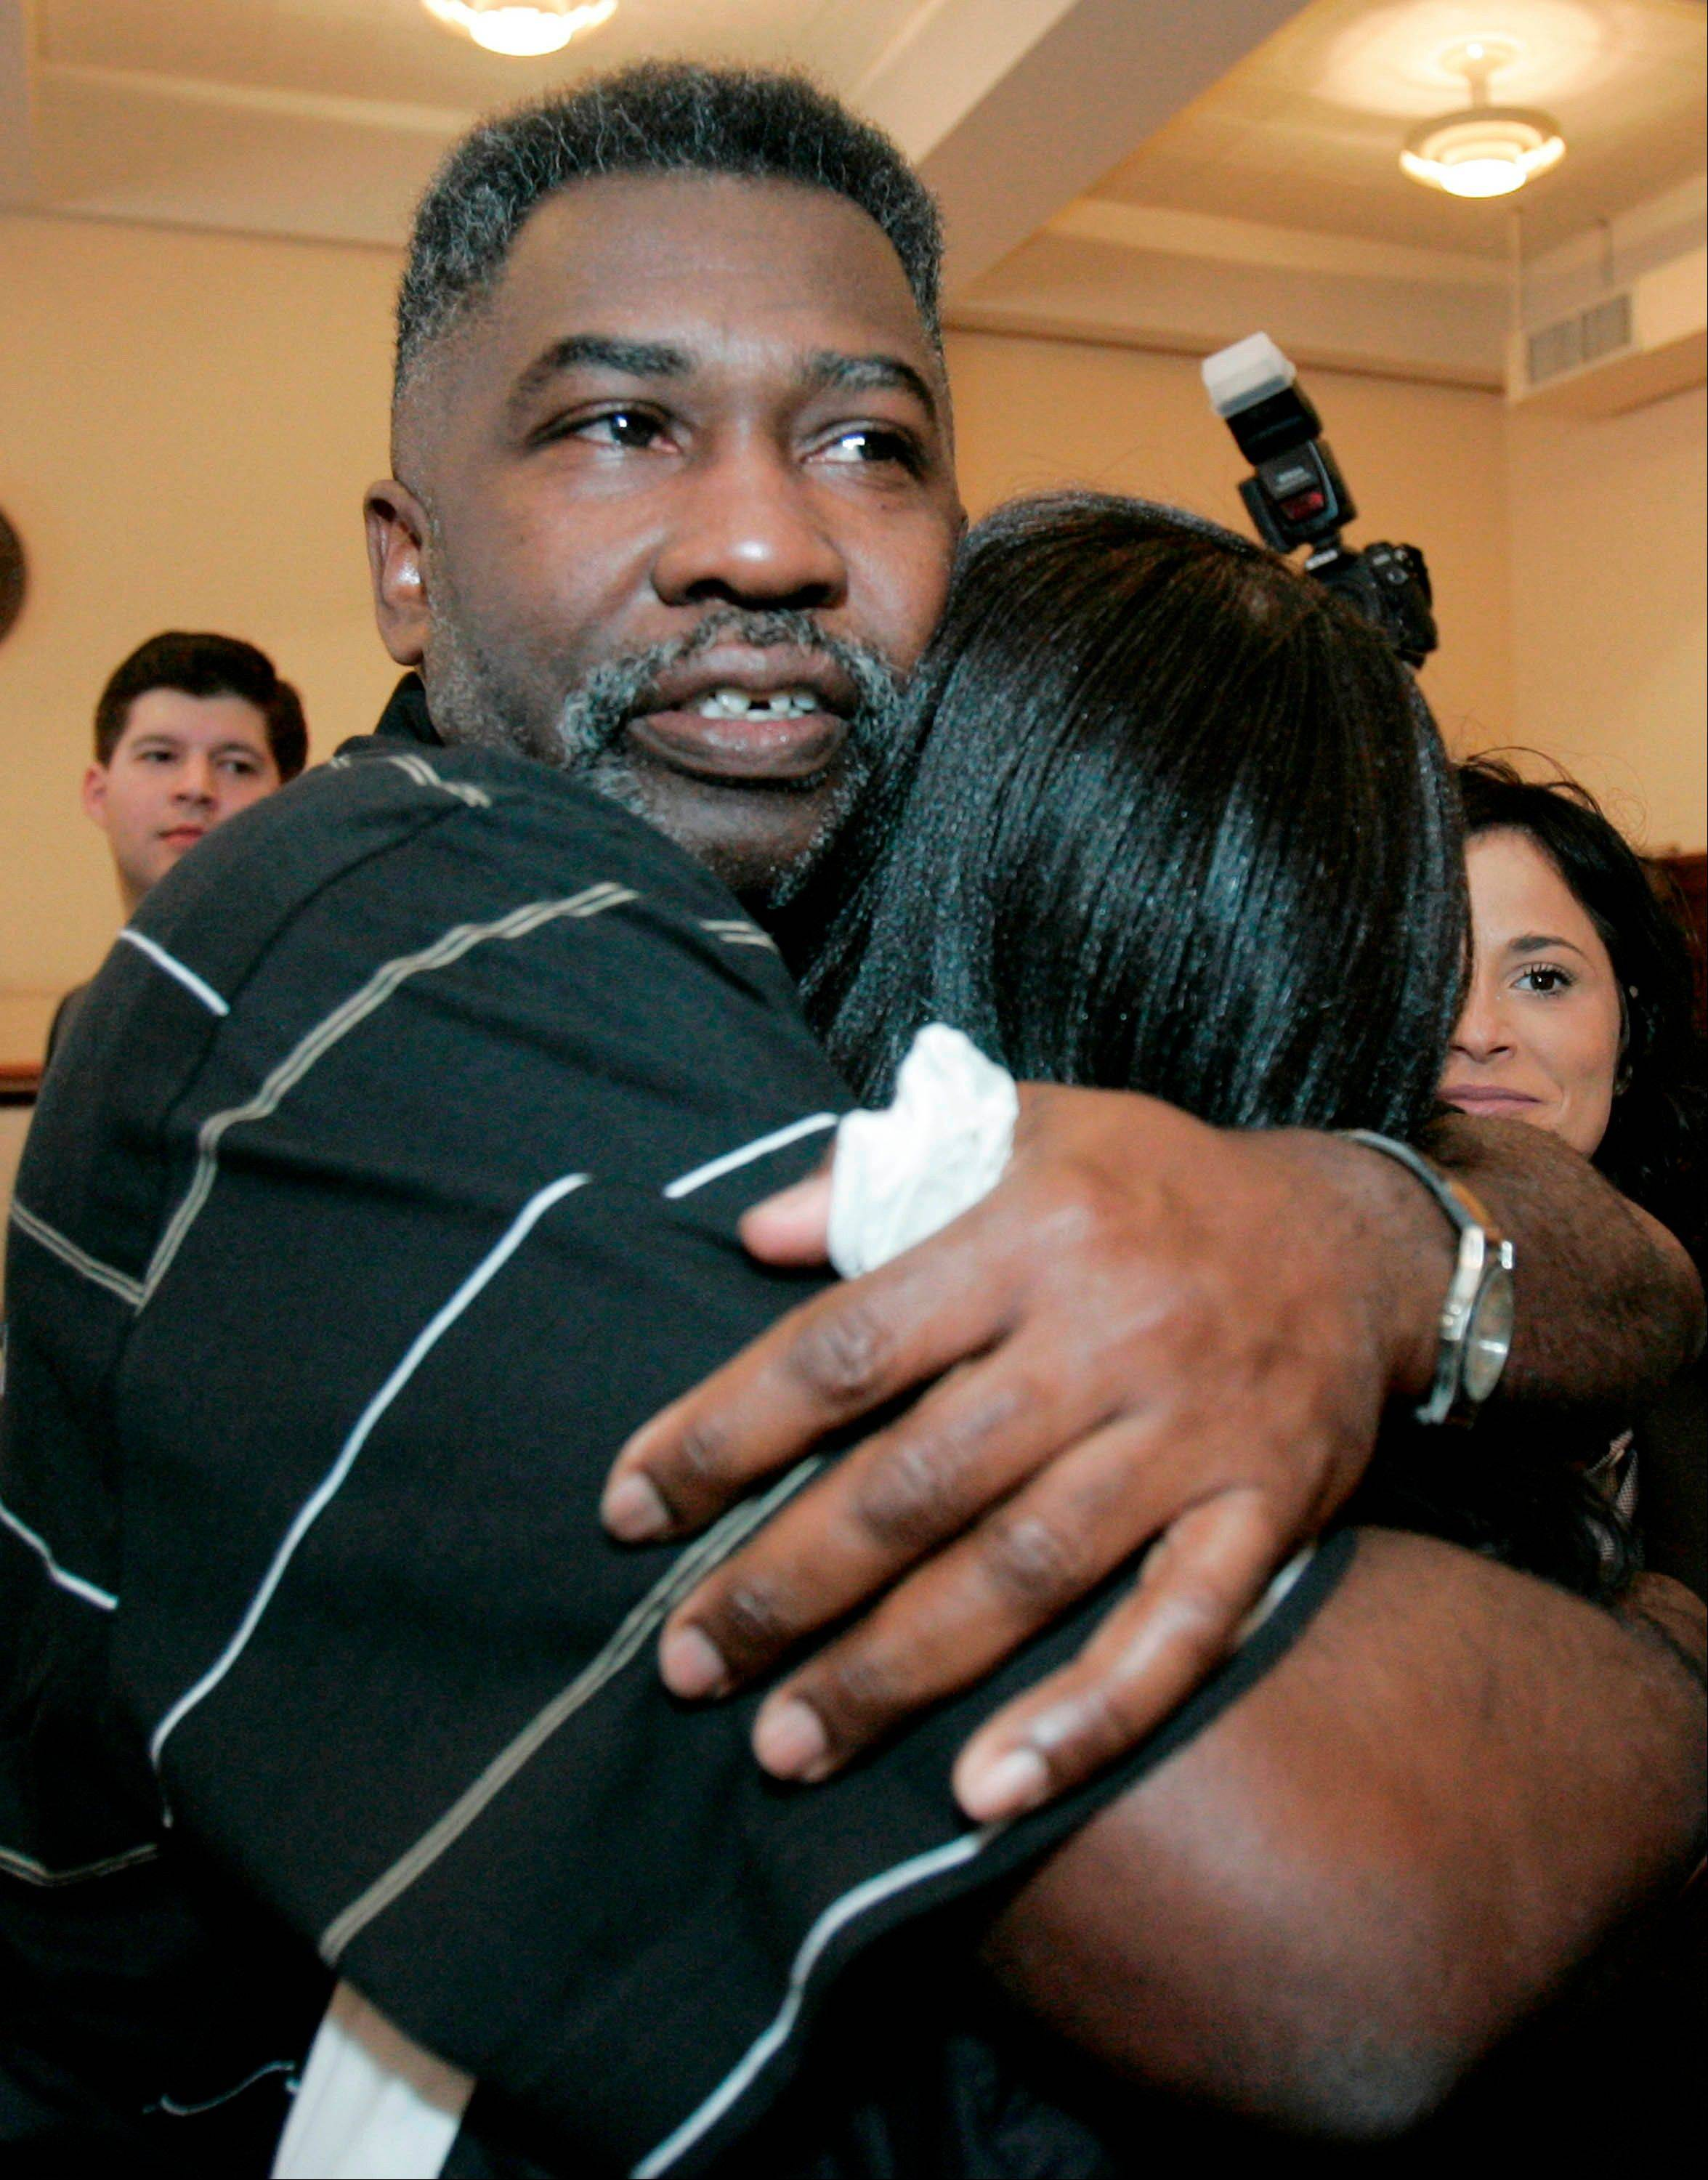 Levon Brooks, left, hugs a friend moments after a judge released him in 2008 pending a new trial for the murder of a child in Macon, Miss. Brooks was convicted in 1992 of raping and killing his ex-girlfriend�s 3-year-old daughter and sentenced to life in prison. He was exonerated after years of fighting by the Mississippi Innocence Project.